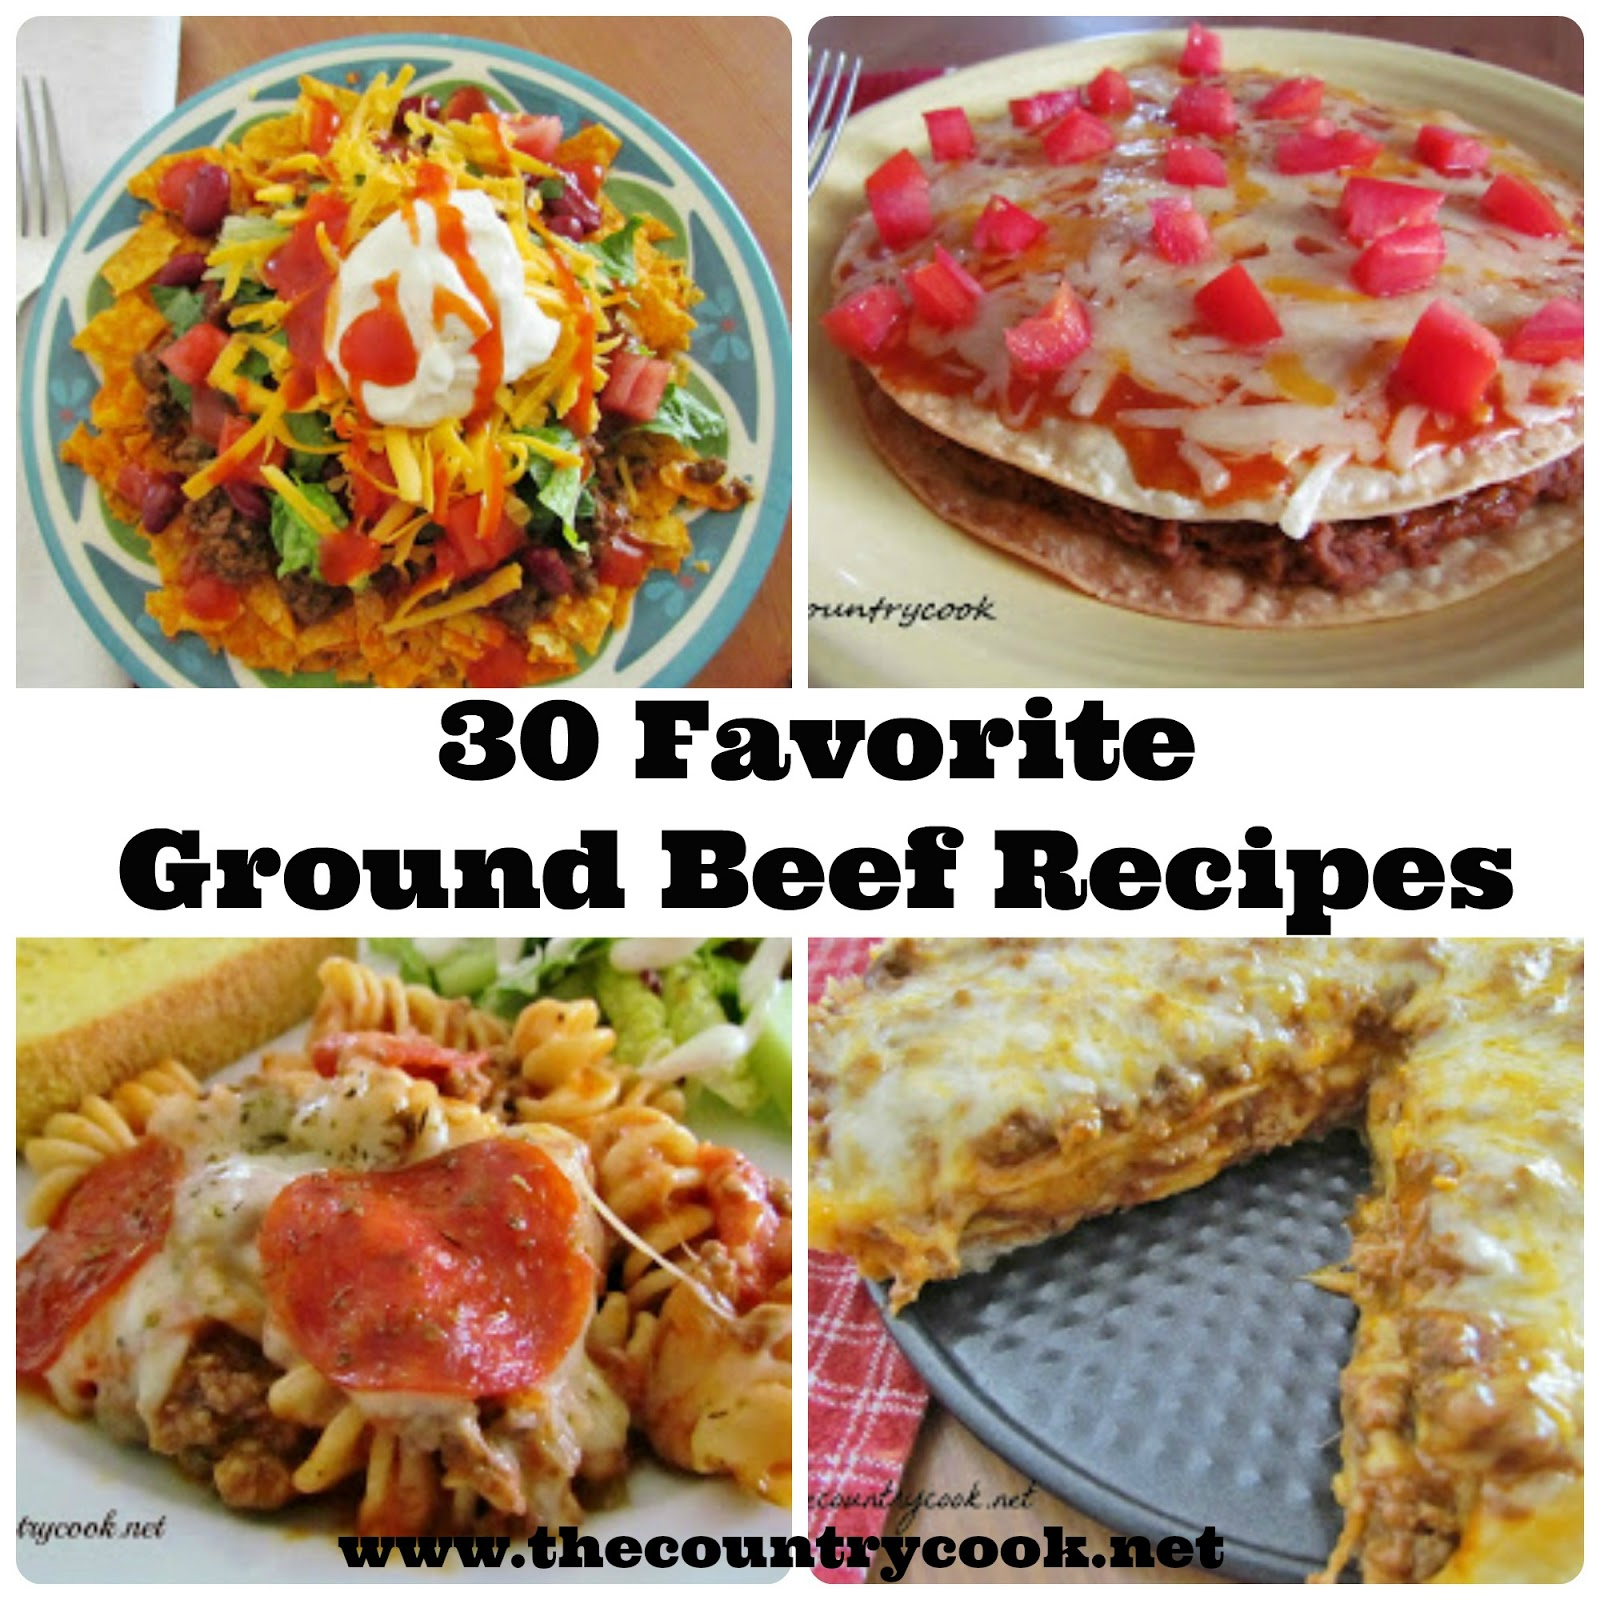 30 favorite ground beef recipes the country cook for What can you cook with ground beef